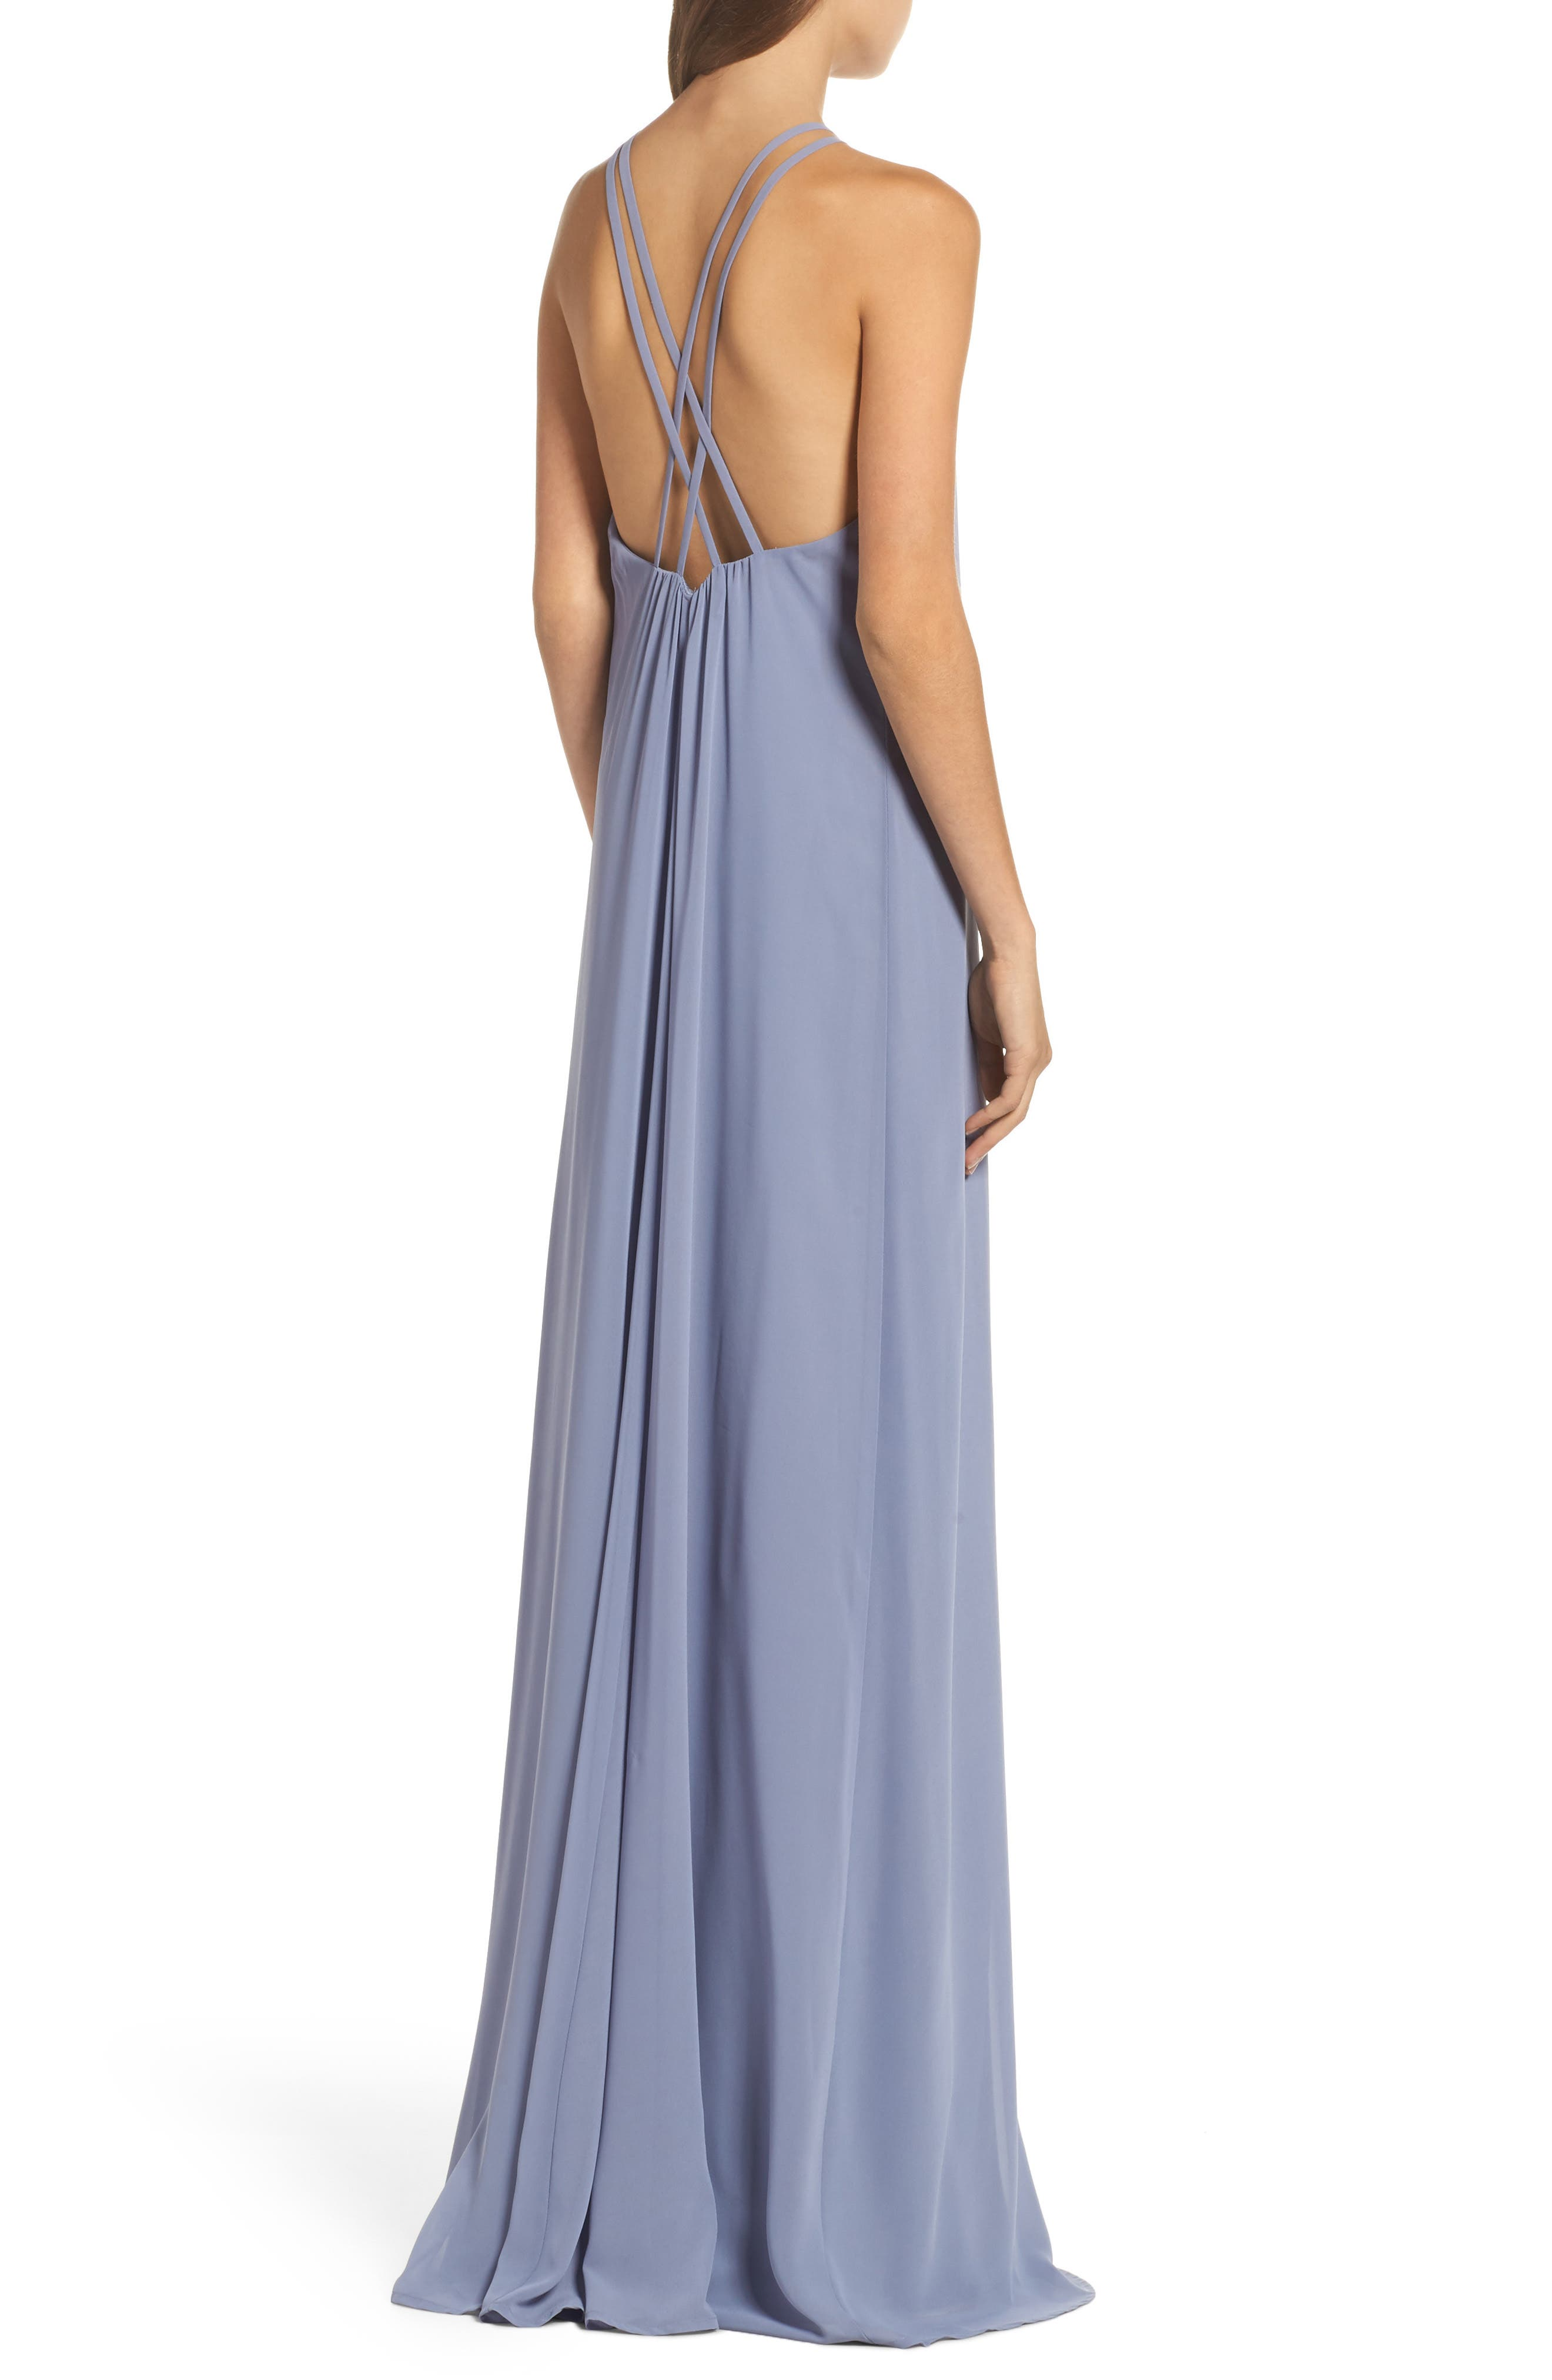 Strappy High Neck Chiffon Gown,                             Alternate thumbnail 2, color,                             020